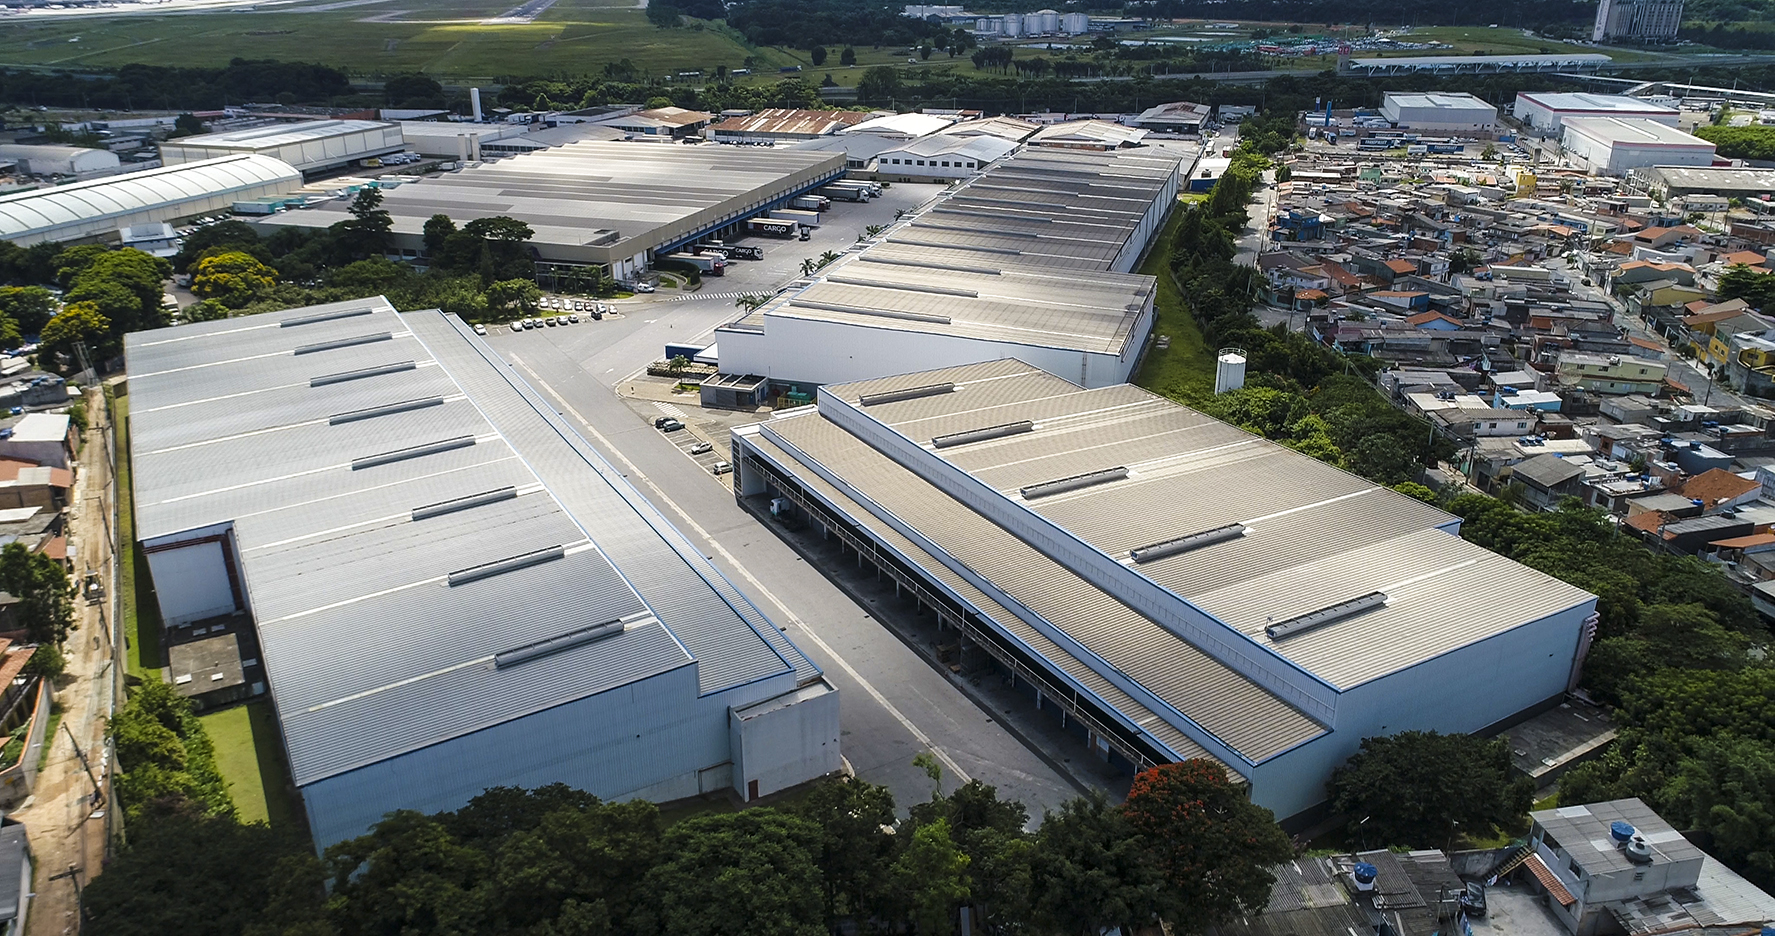 A large logistics warehouse in Brazil